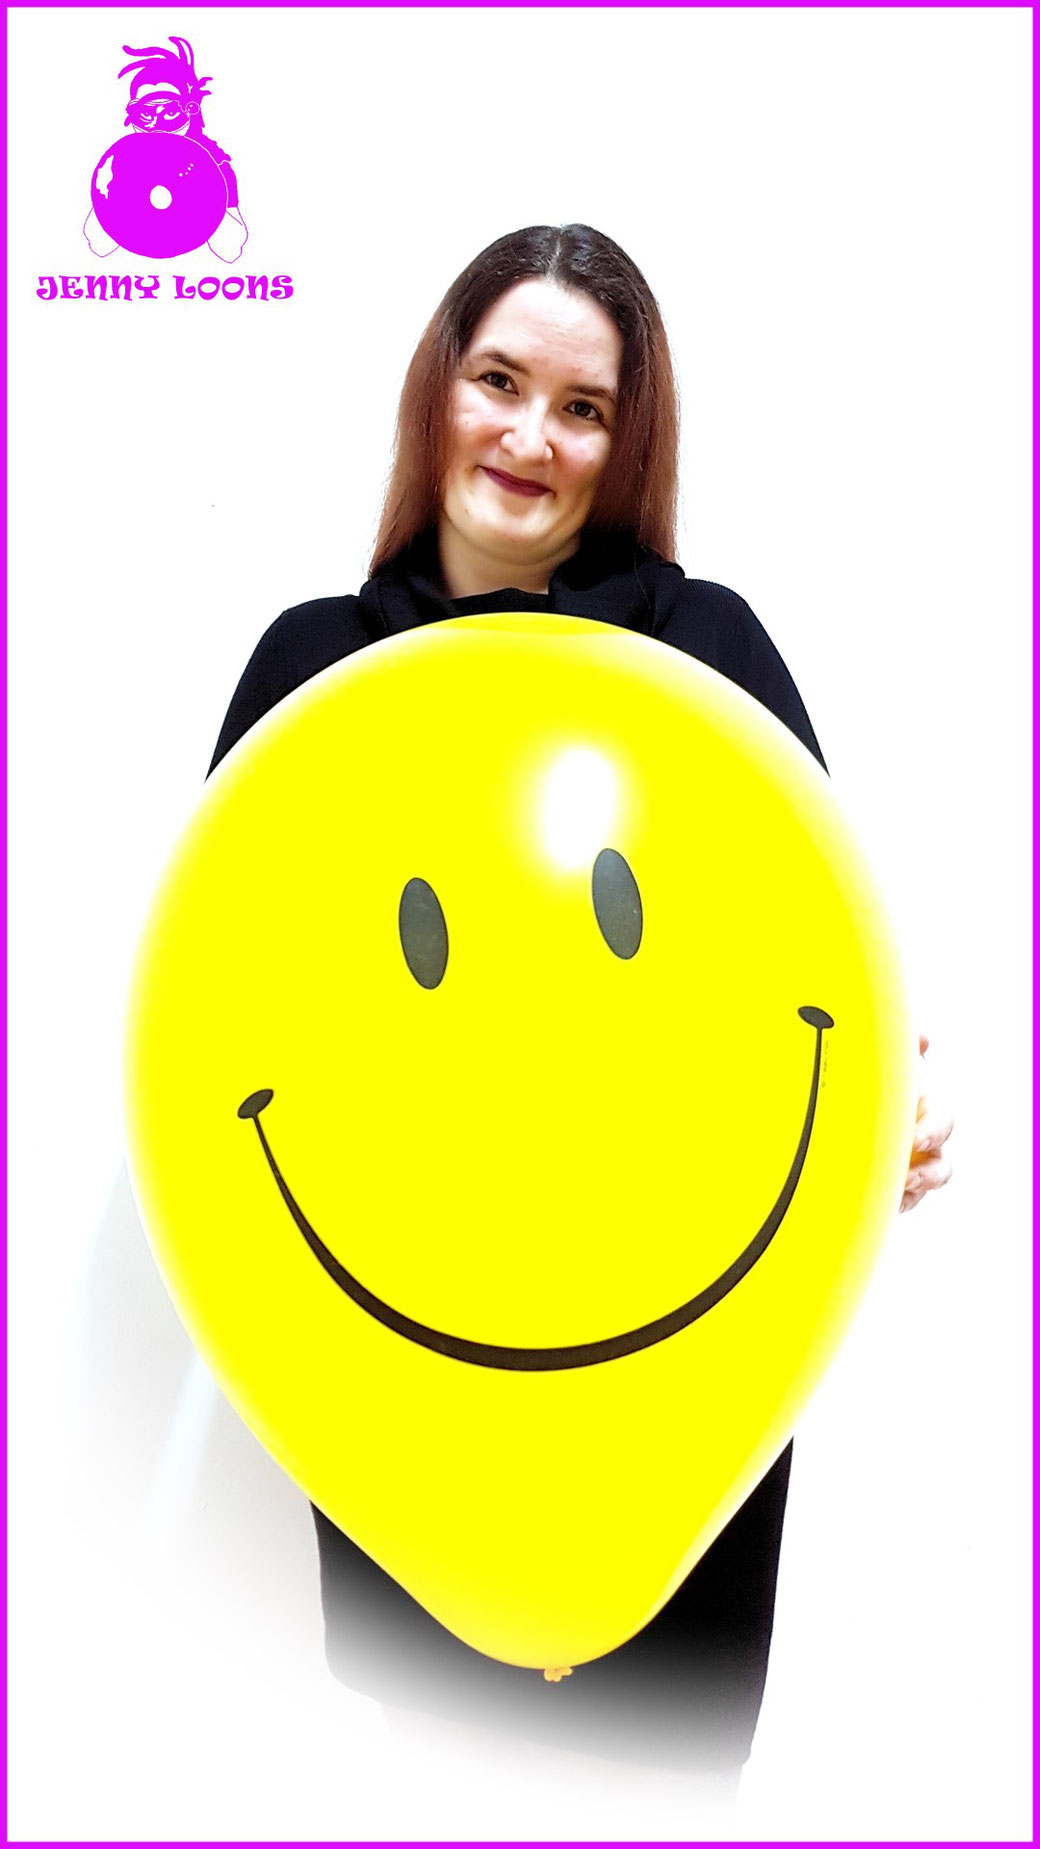 Qualatex Luftballon Ballon Smiley Smile 16inch 40cm Face gelb yellow Balloon Balloons